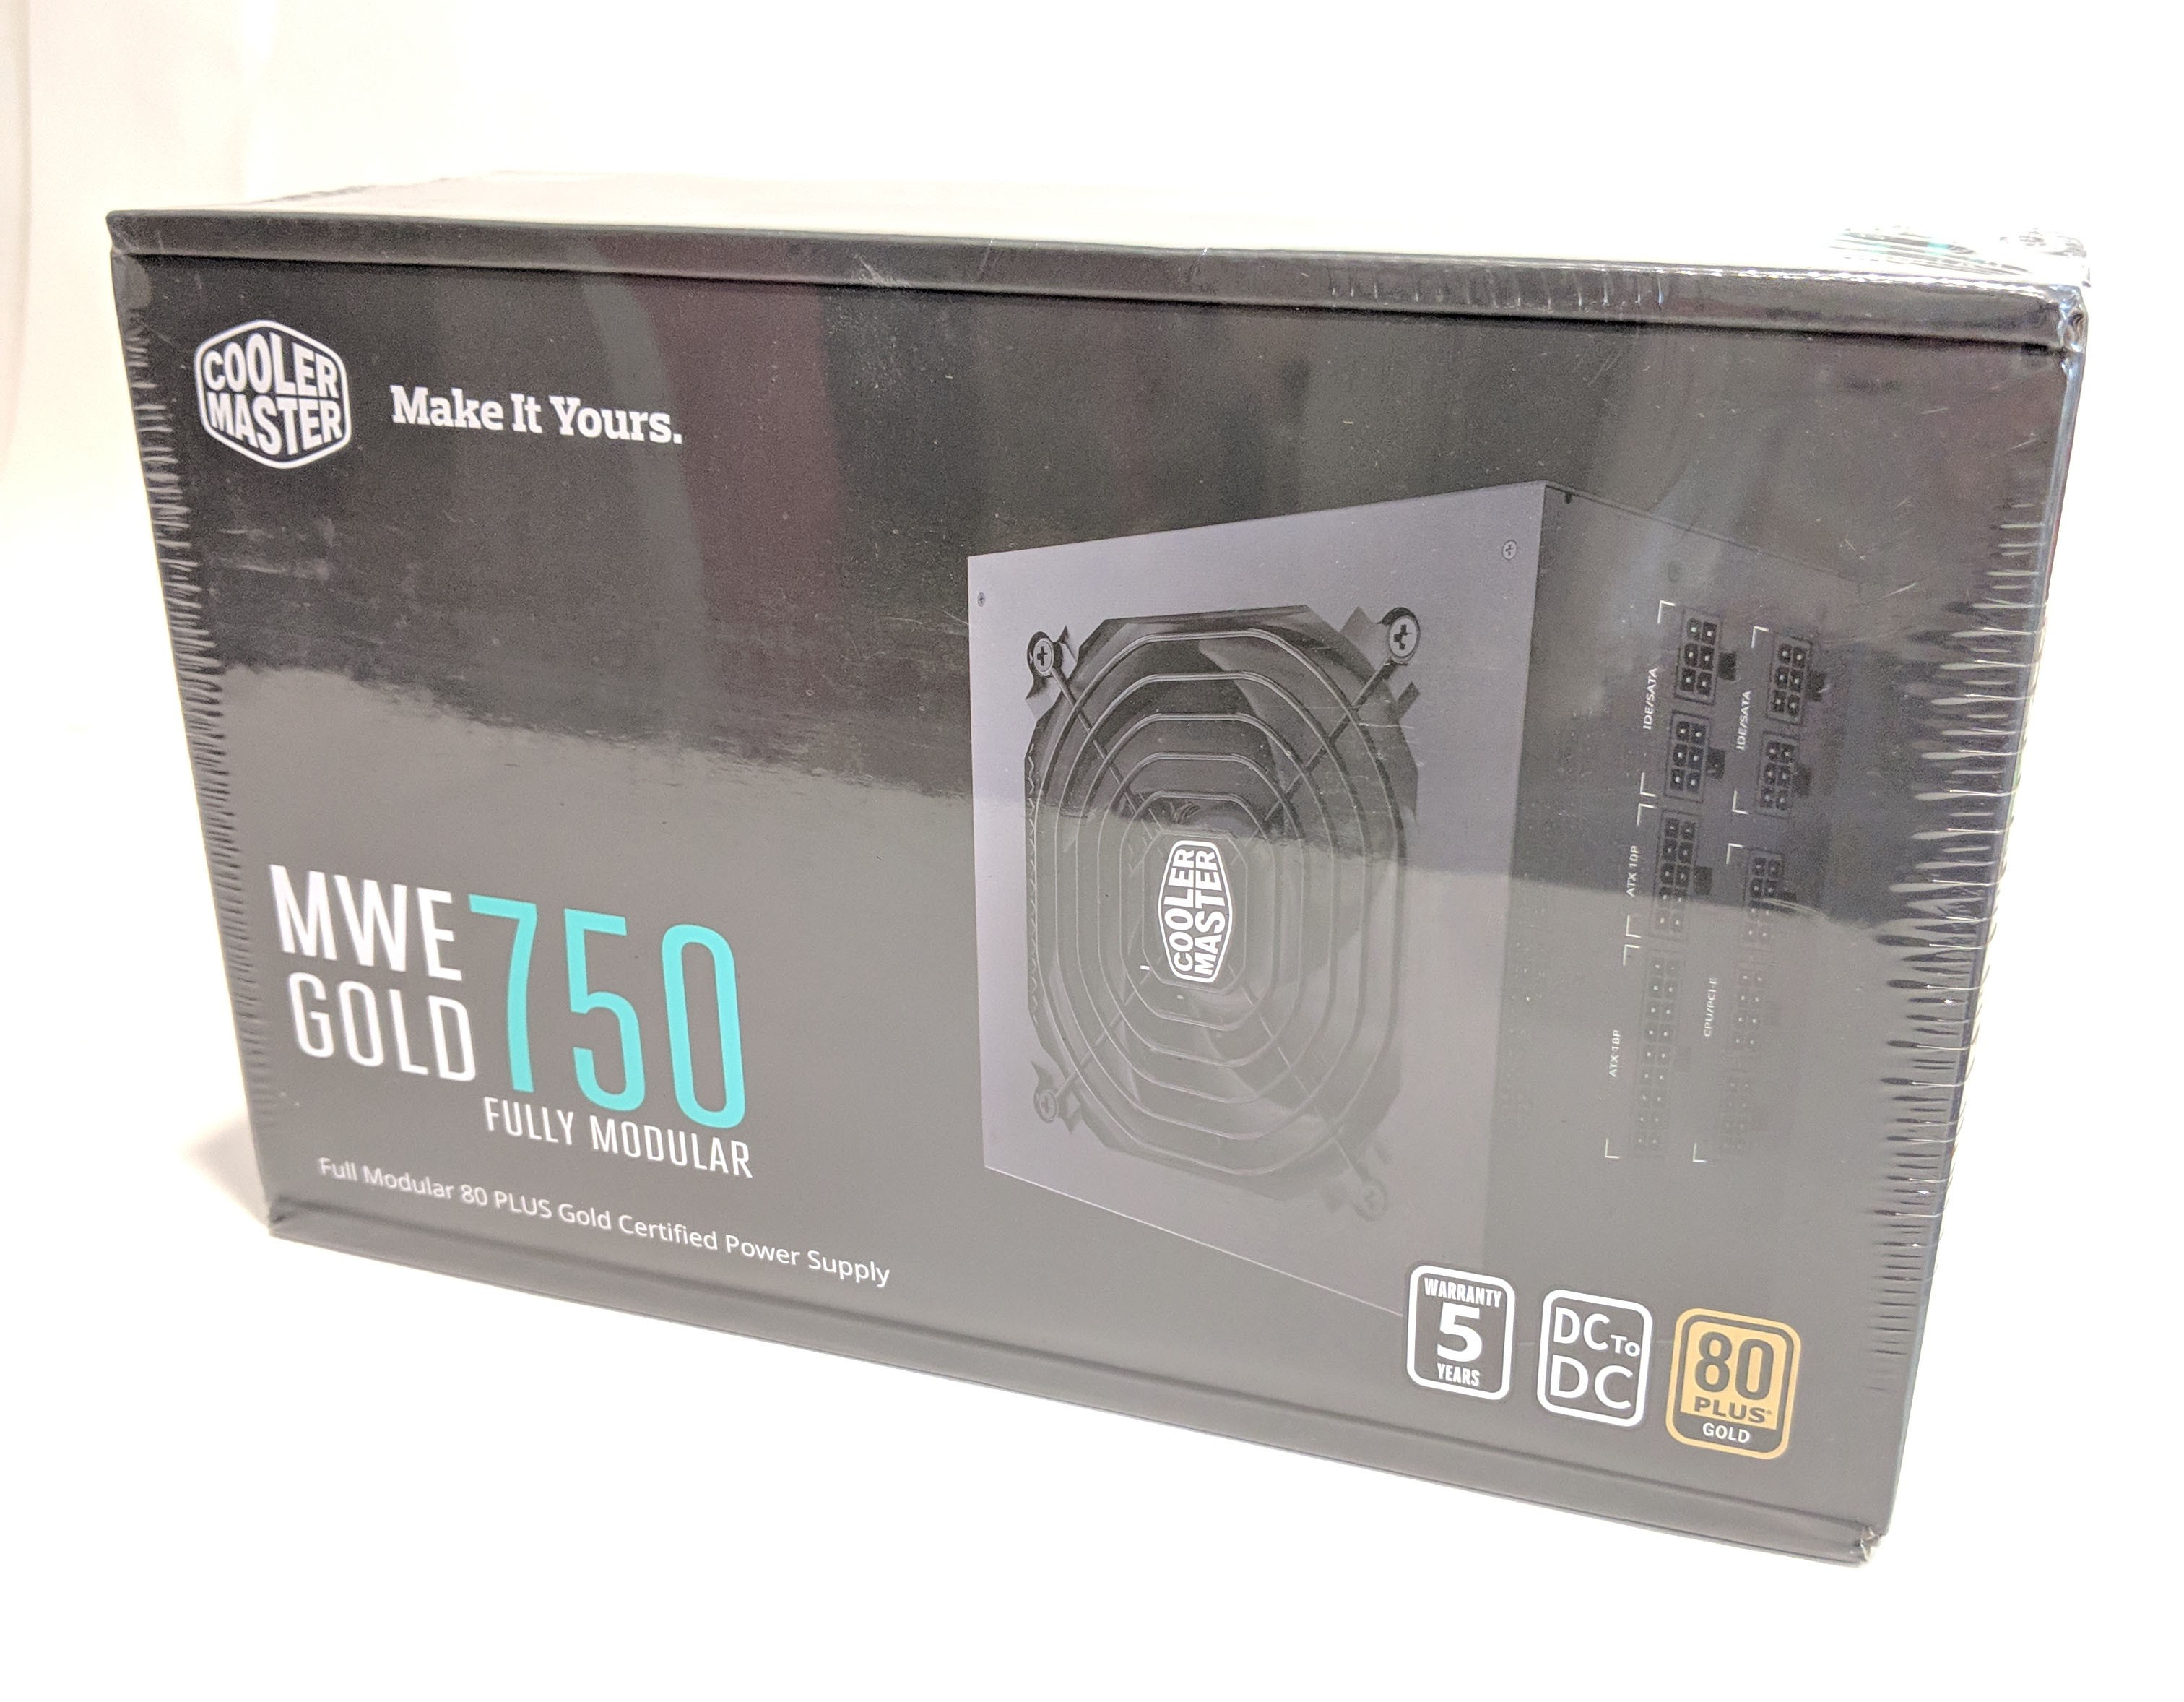 Cooler Master Mwe Gold 750 Power Supply Review Gnd Tech